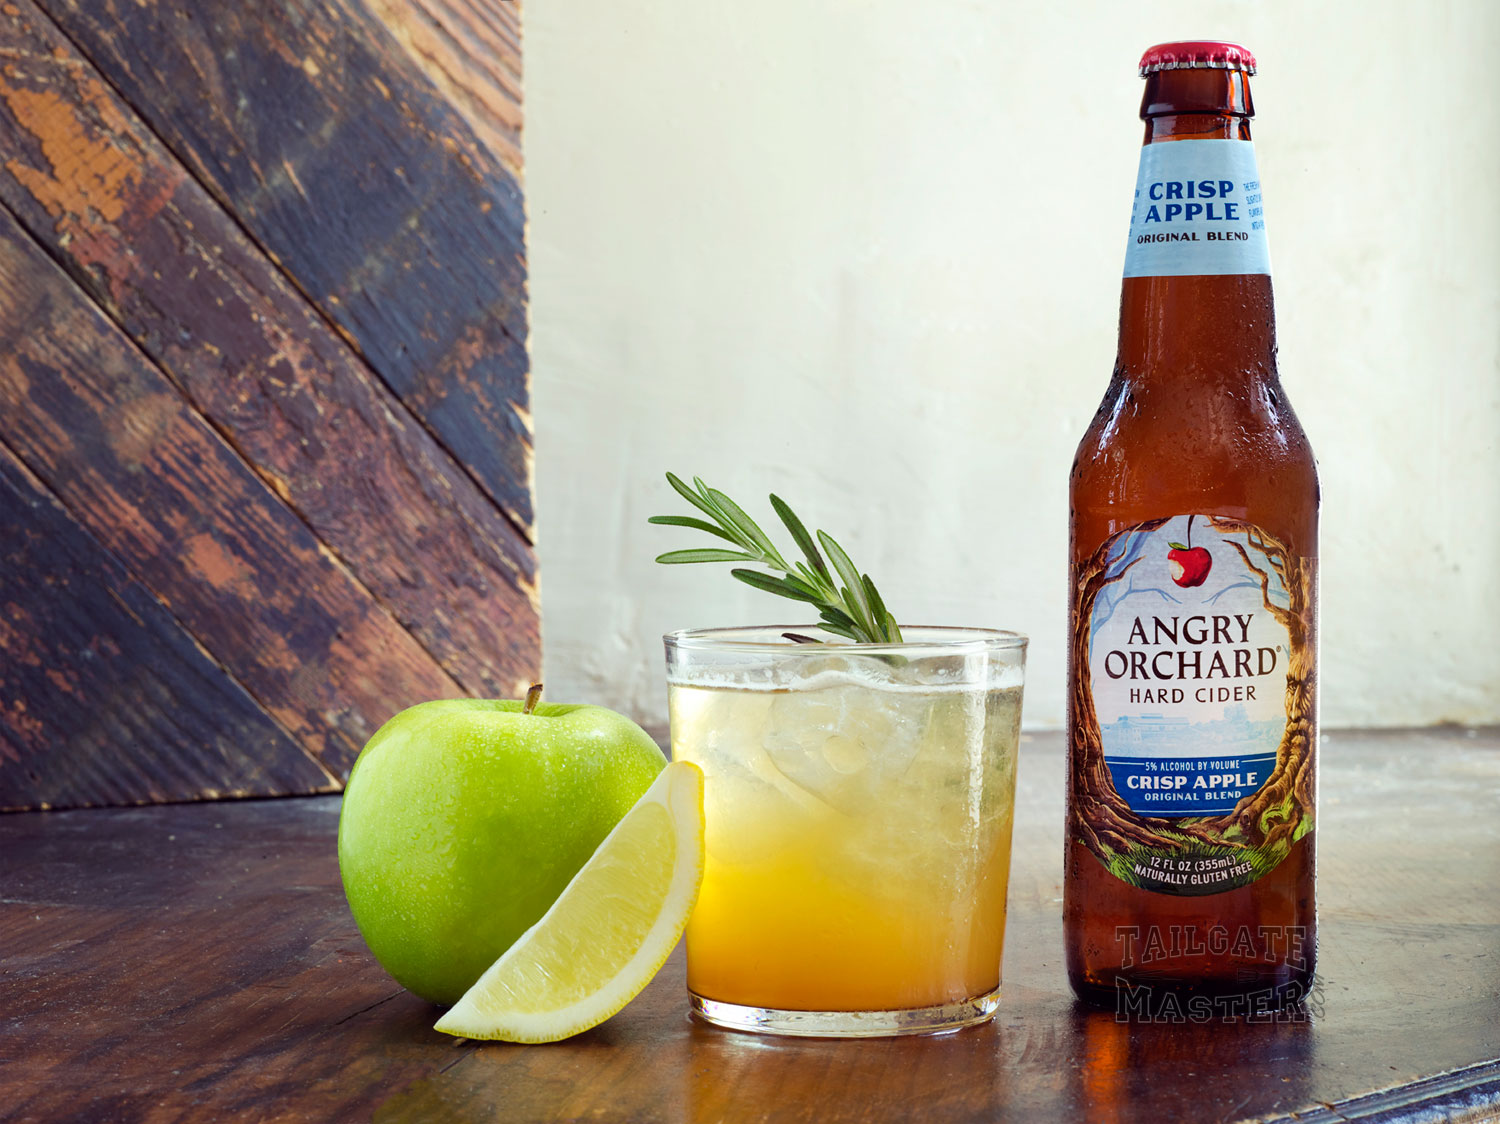 Southern Orchard Angry Orchard hard cider